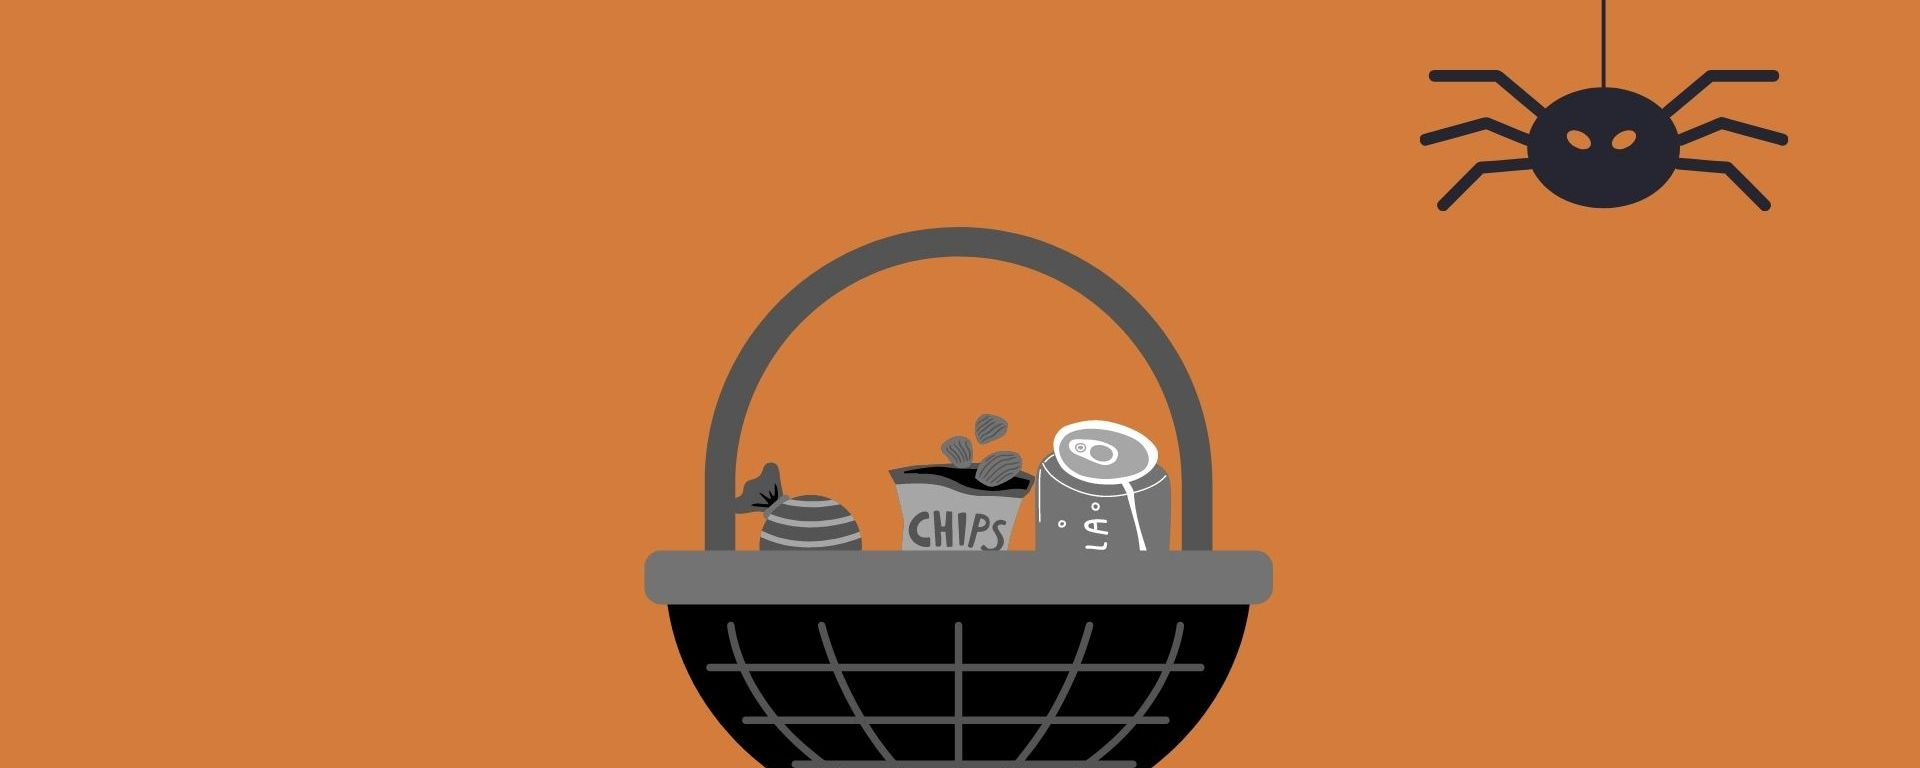 An orange background with a black and white basket filled with goodies and a black spider hanging from the top of the image